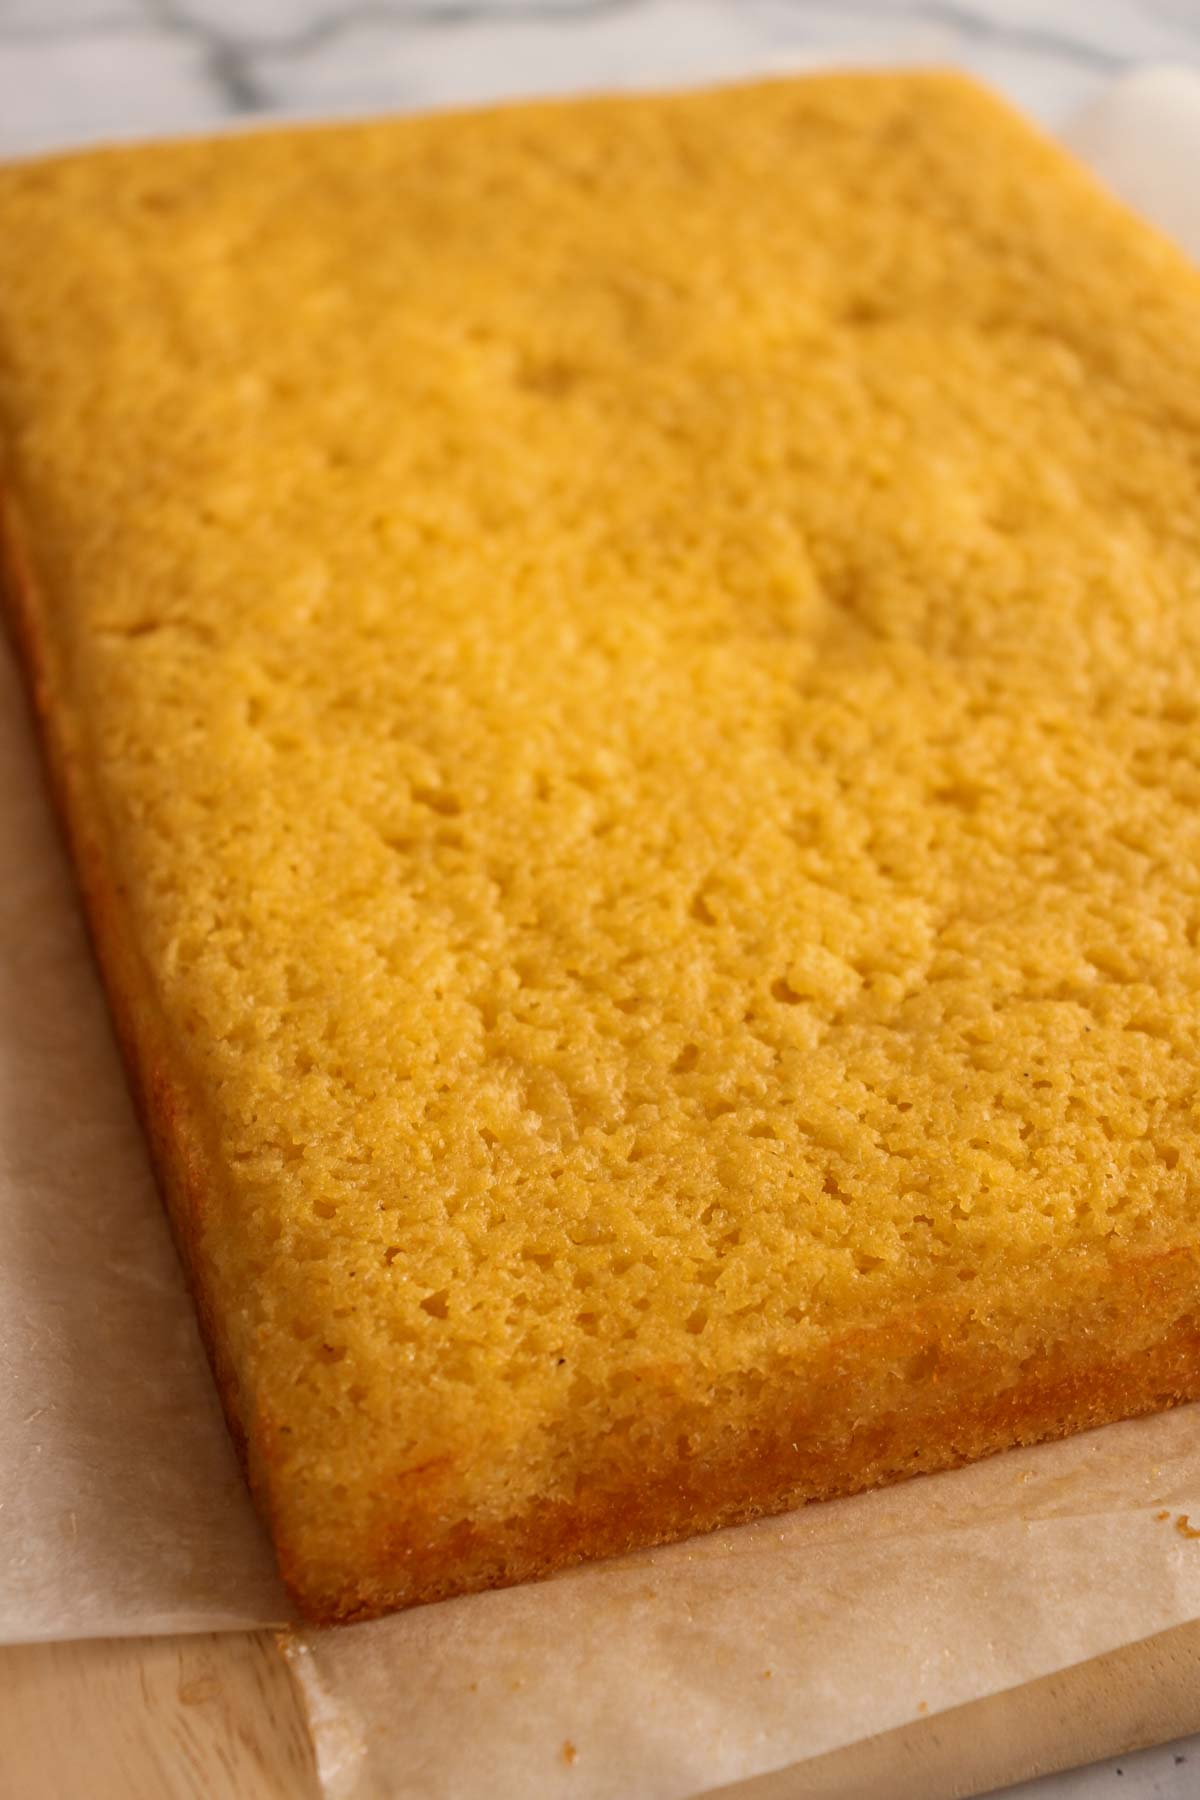 A rectangular slab of baked cornbread with parchment paper beneath it on a wooden board.